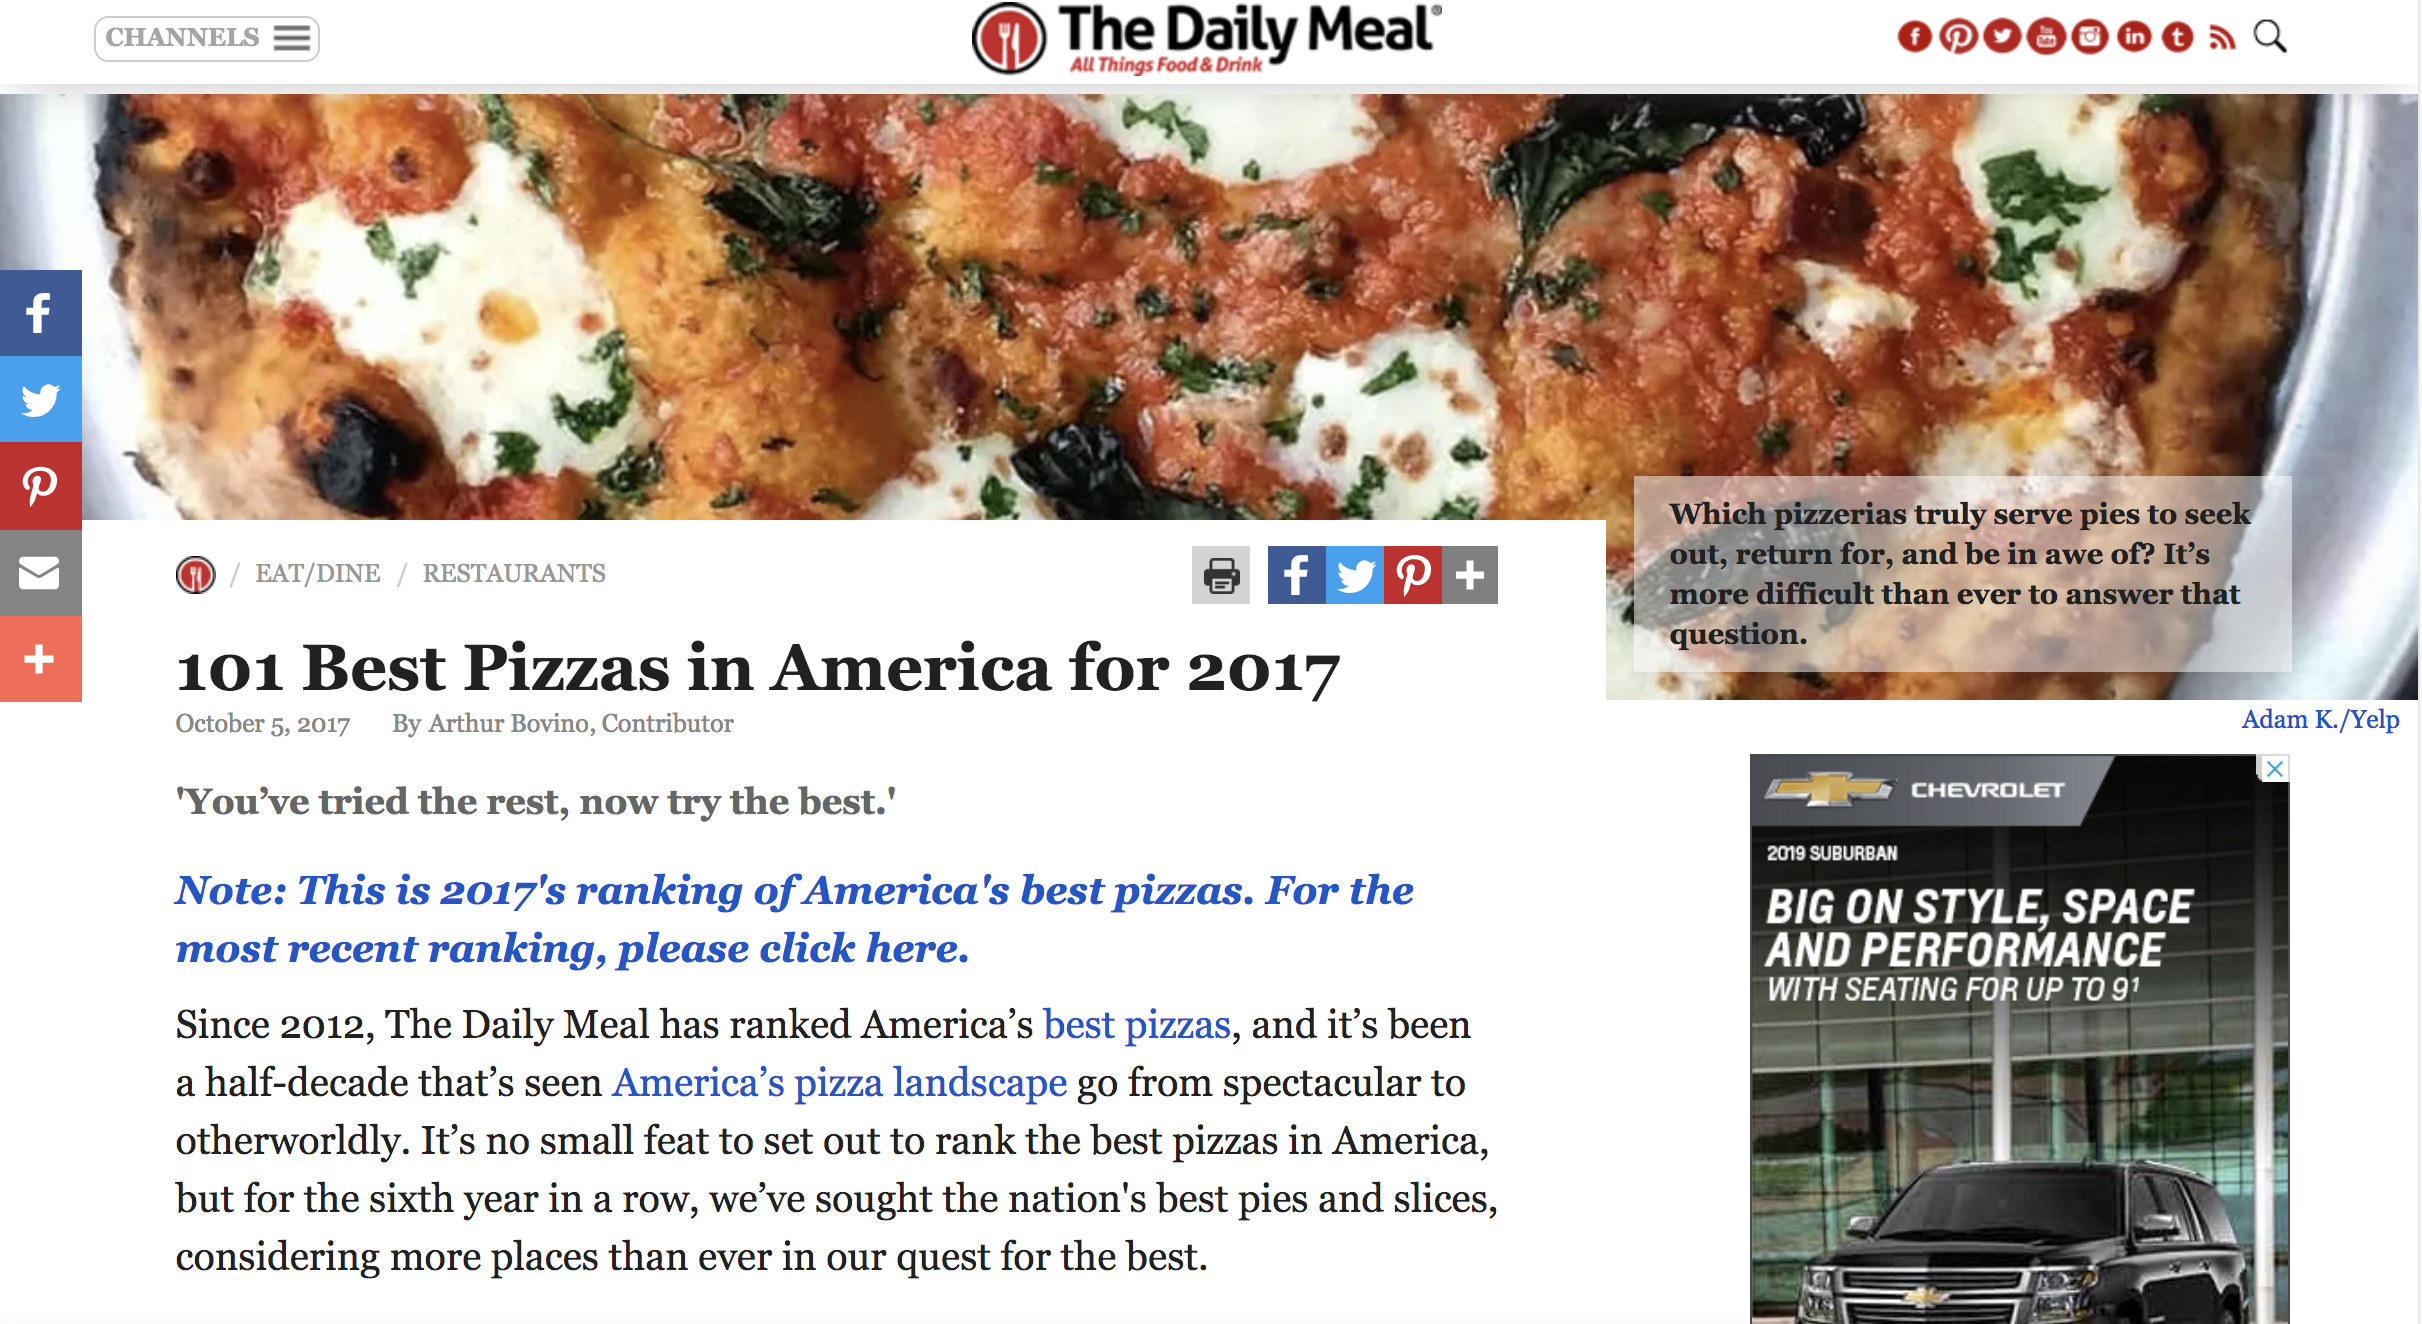 We've obsessively cast as wide a net as possible across the country to search for the best pizzas.